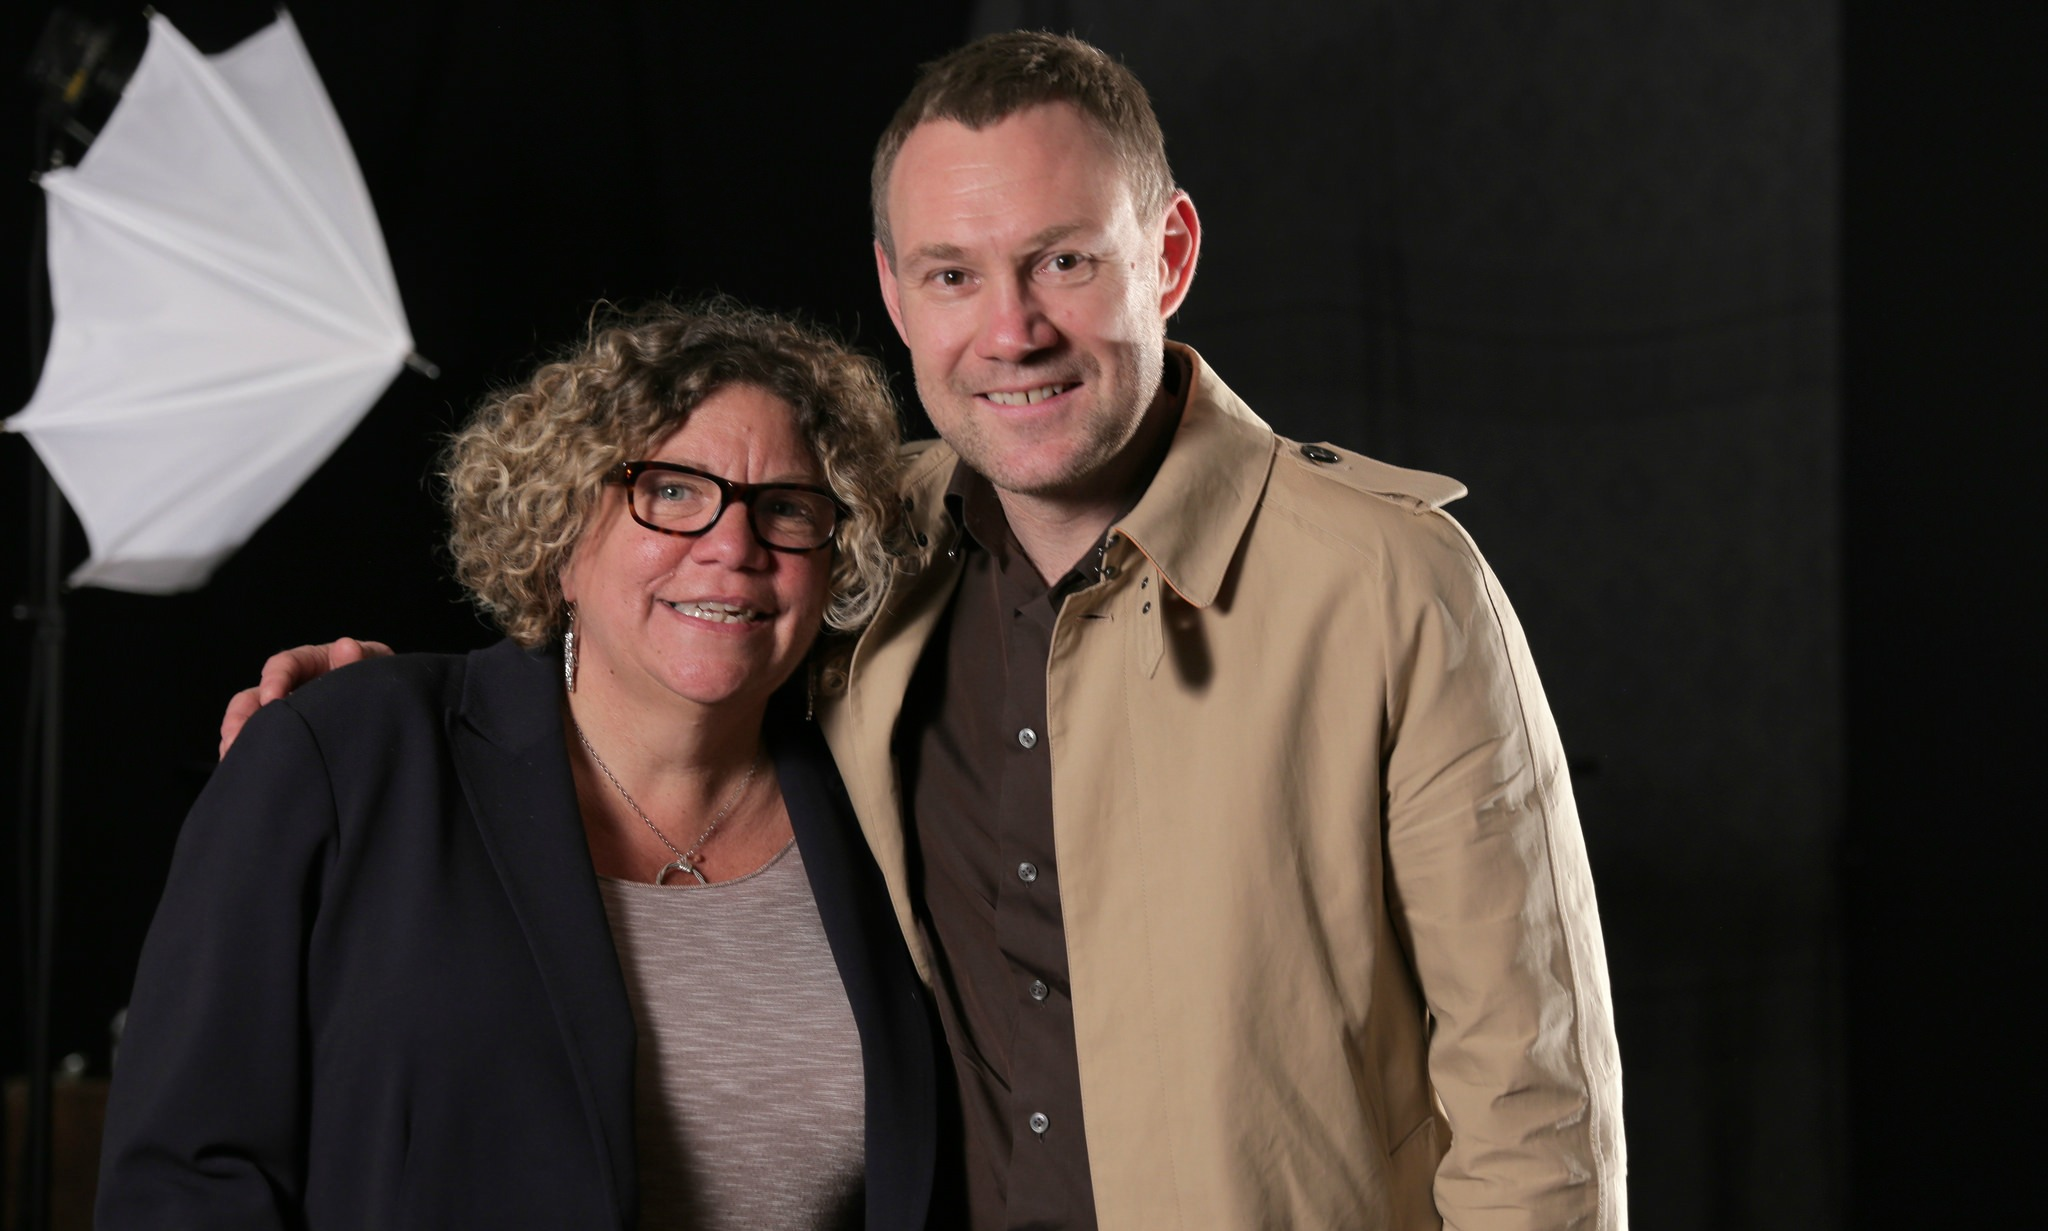 Hear an FUV Live session with David Gray tonight at 9.